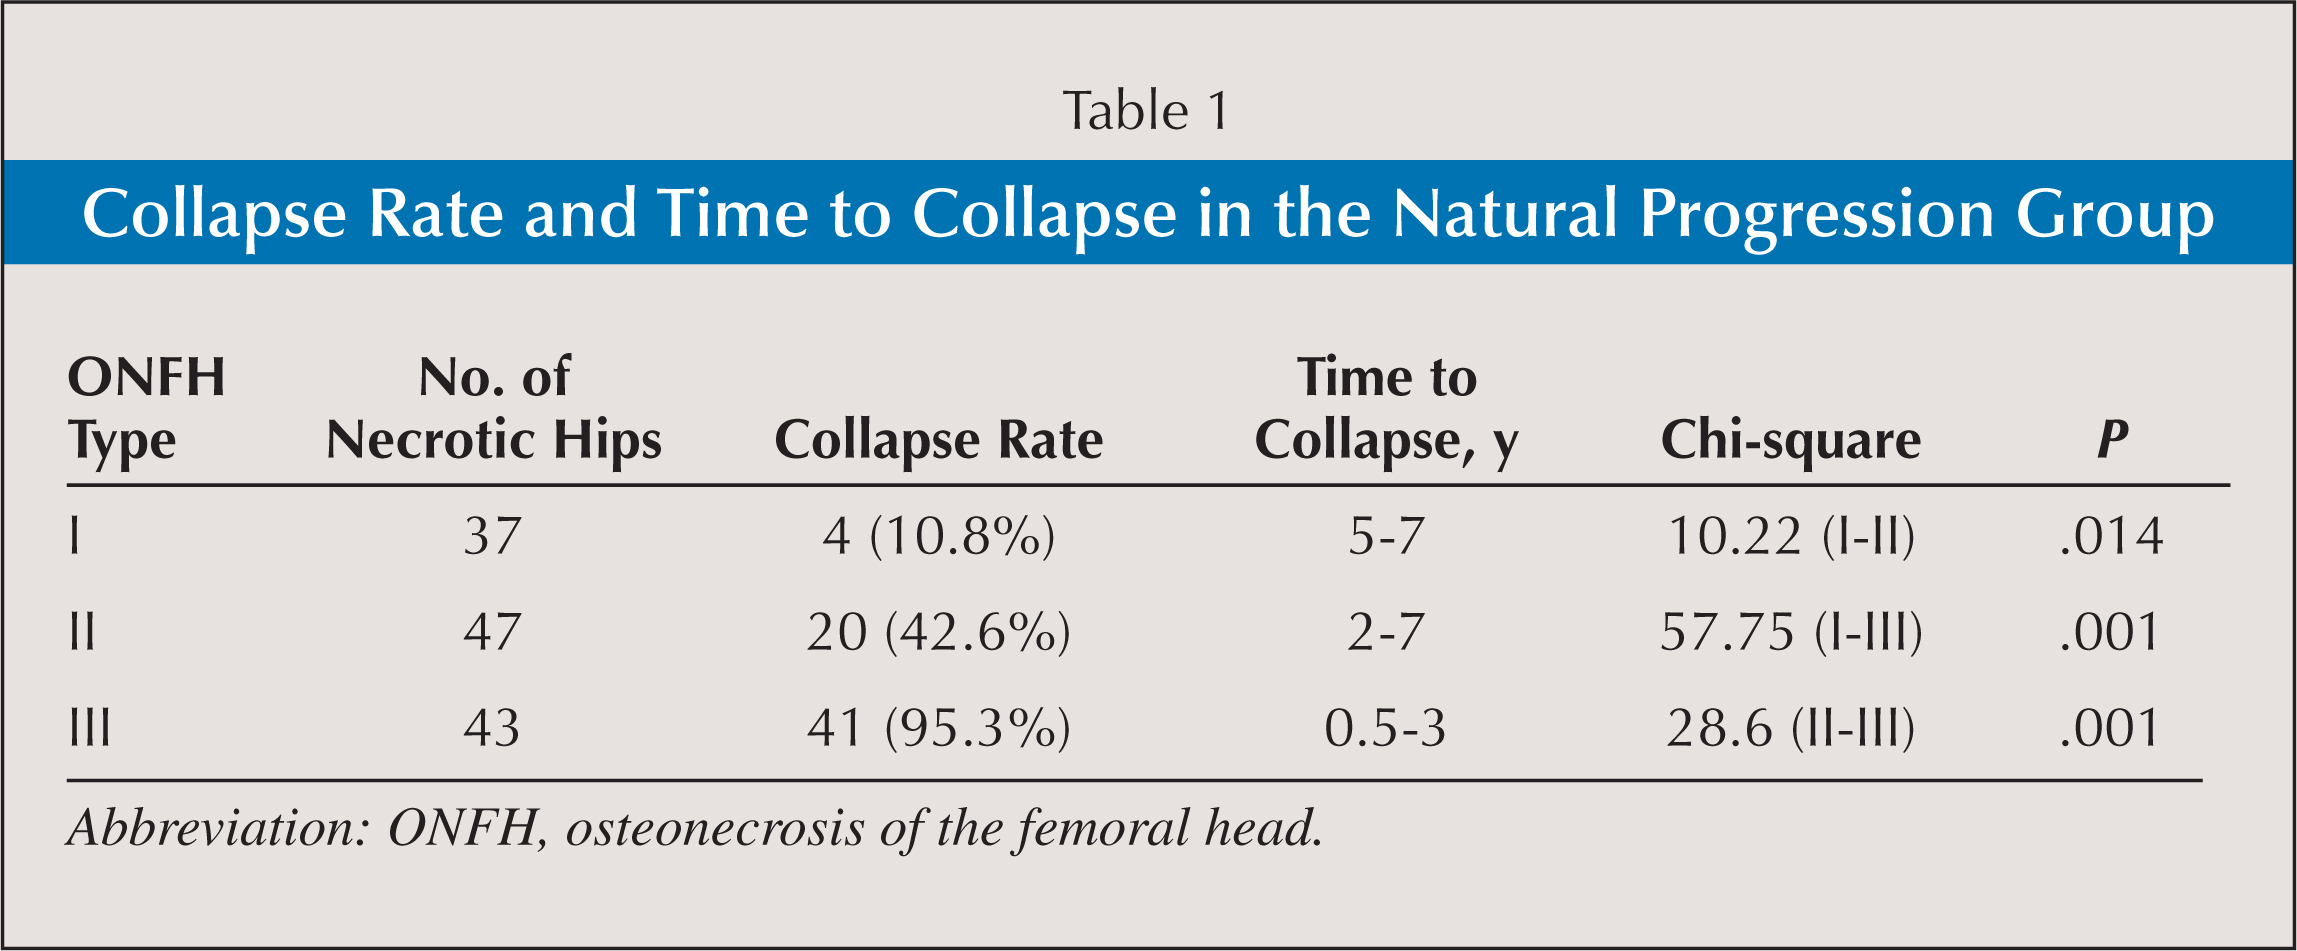 Collapse Rate and Time to Collapse in the Natural Progression Group